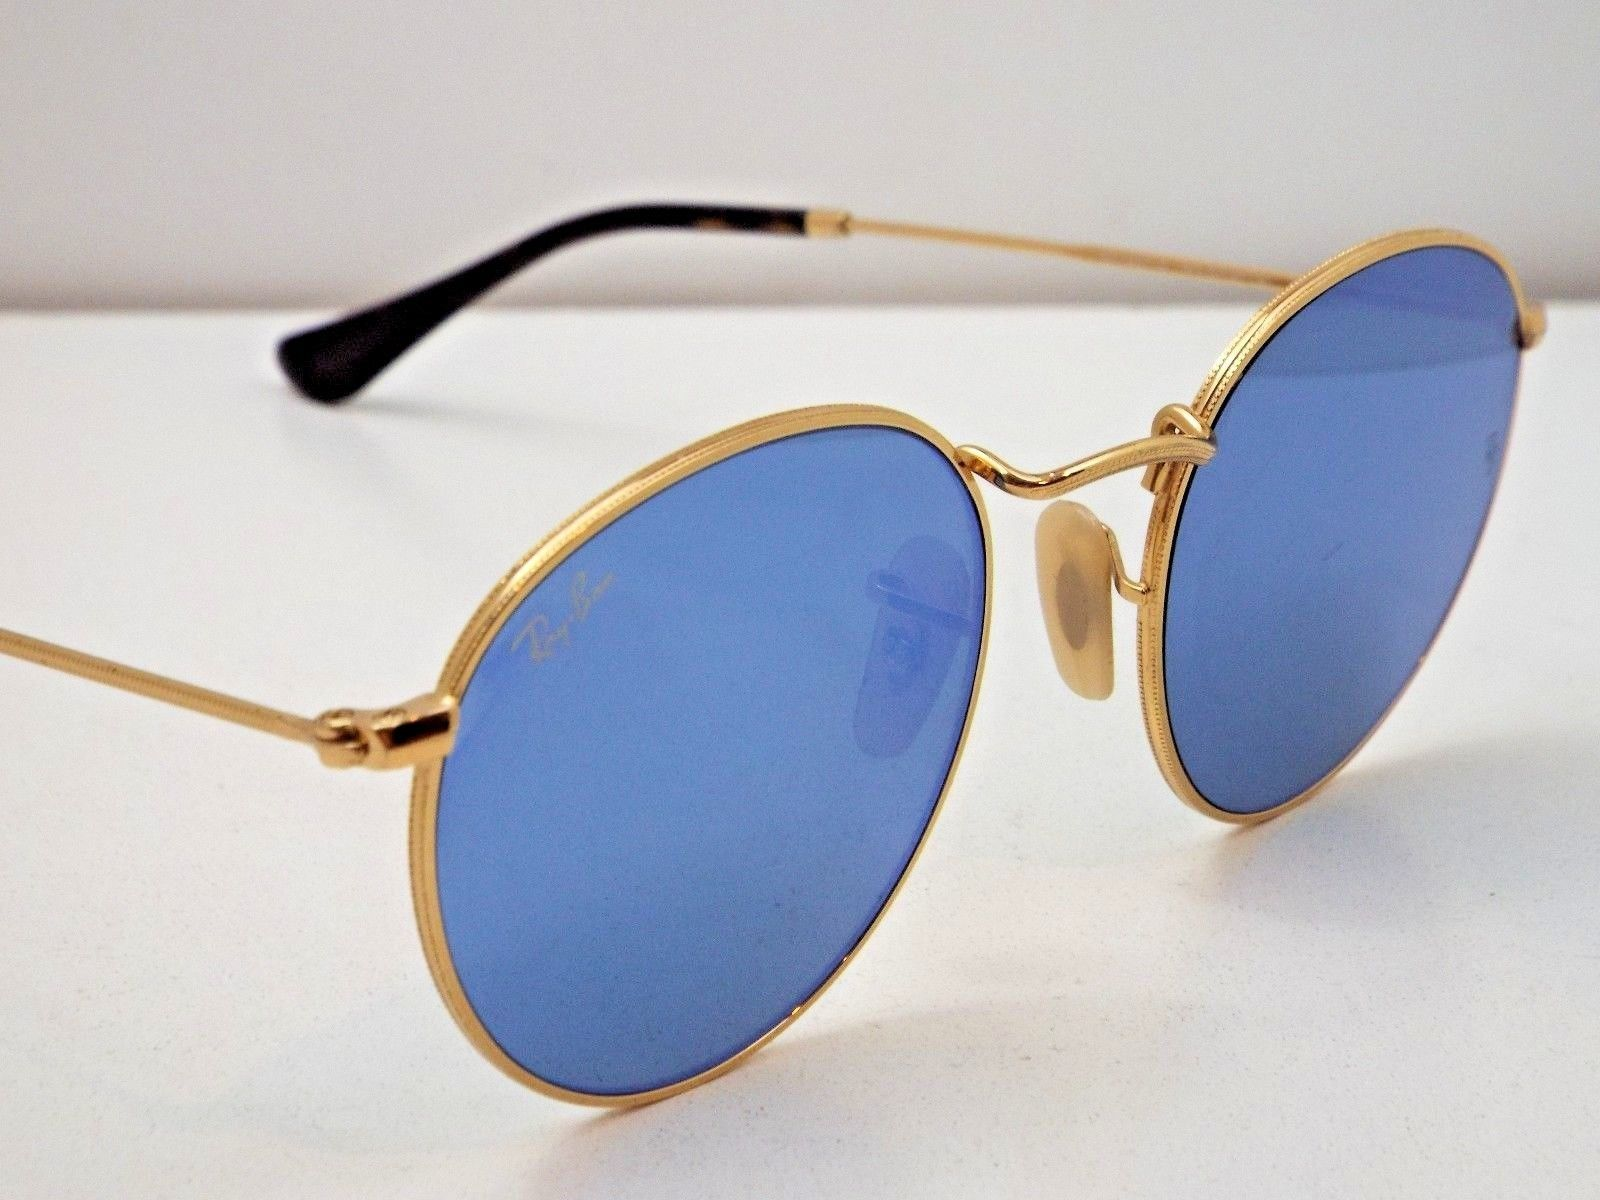 4927714.5. 4927714.5. Ray-Ban Sunglasses 3447N 001 90 50 Gold Frame  Blue  Mirror Lens Round · Ray-Ban ... 21cb8b93c2fb